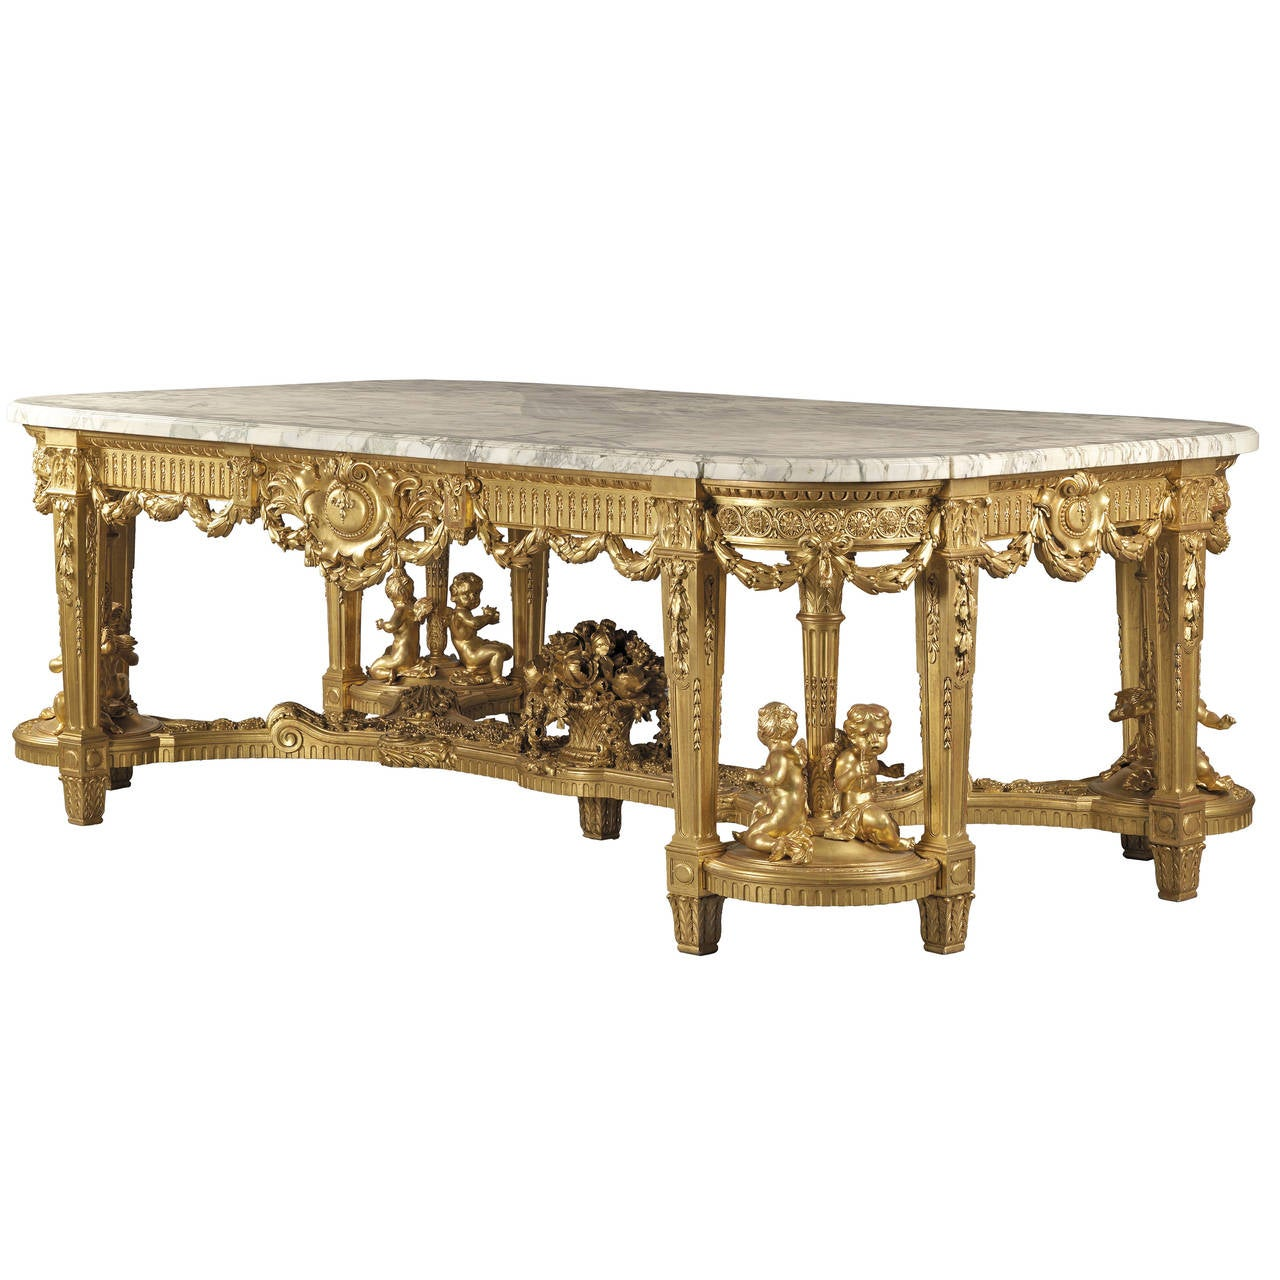 Louis XVI Style Centre Table by Fran ois Linke 1Louis XVI Style Centre Table by Fran ois Linke For Sale at 1stdibs. Louis Xvi Style Furniture For Sale. Home Design Ideas